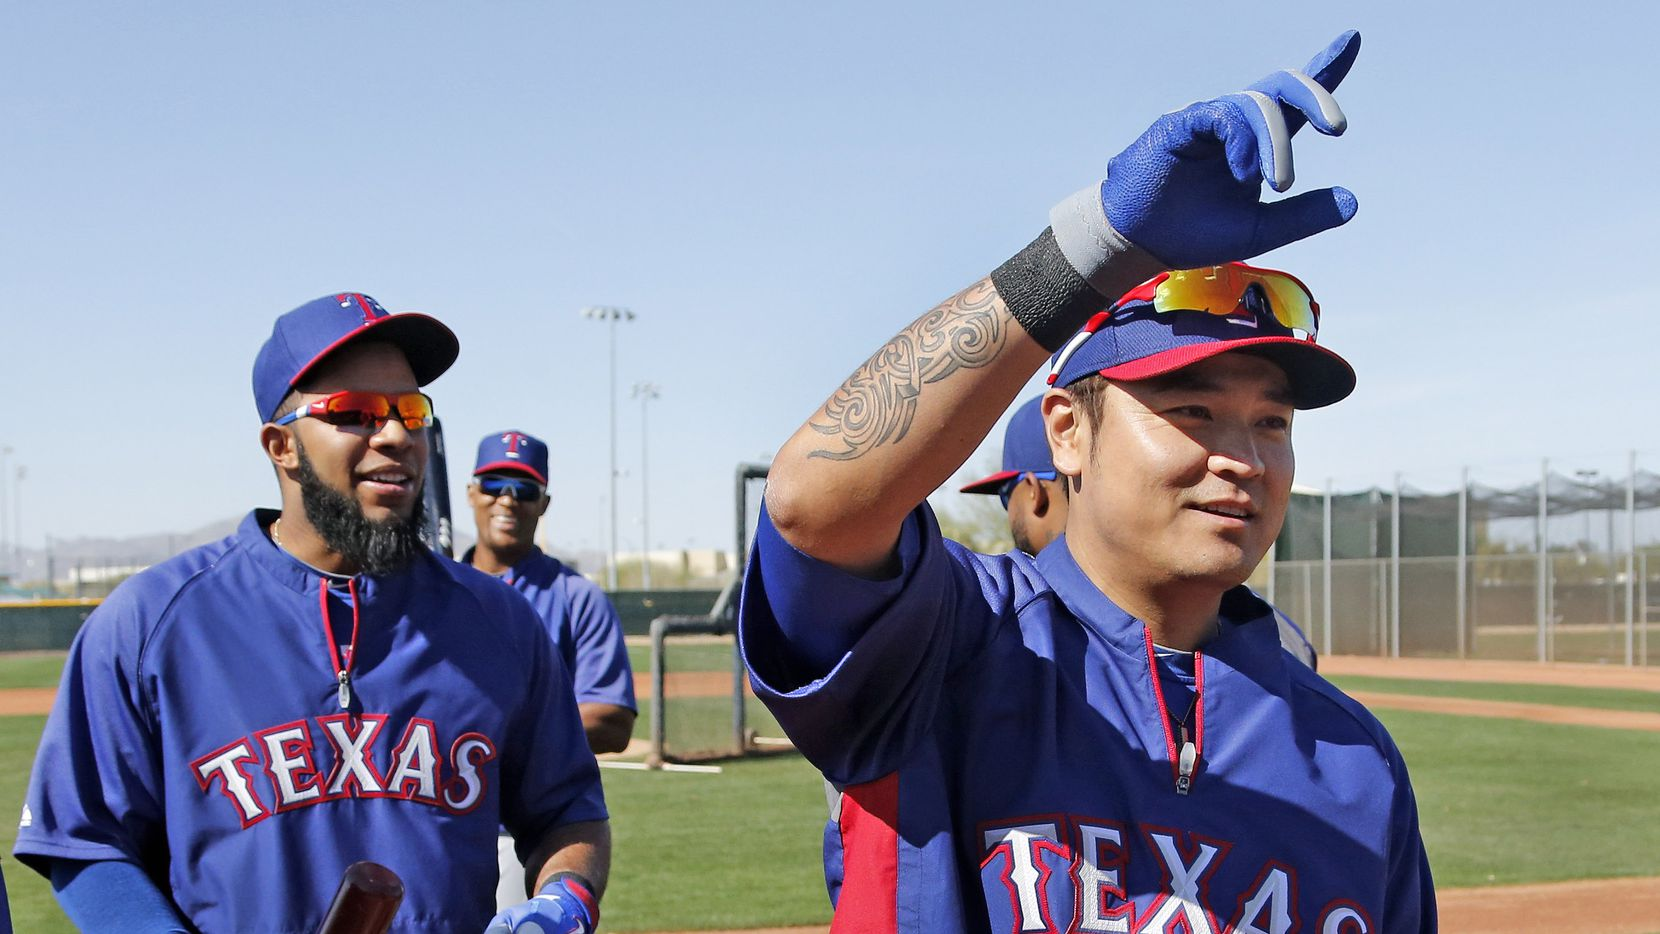 Texas shortstop Elvis Andrus, left, and outfielder Shin-Soo Choo are pictured during Texas Rangers baseball spring training in Surprise, AZ  on Thursday, February 20, 2014.